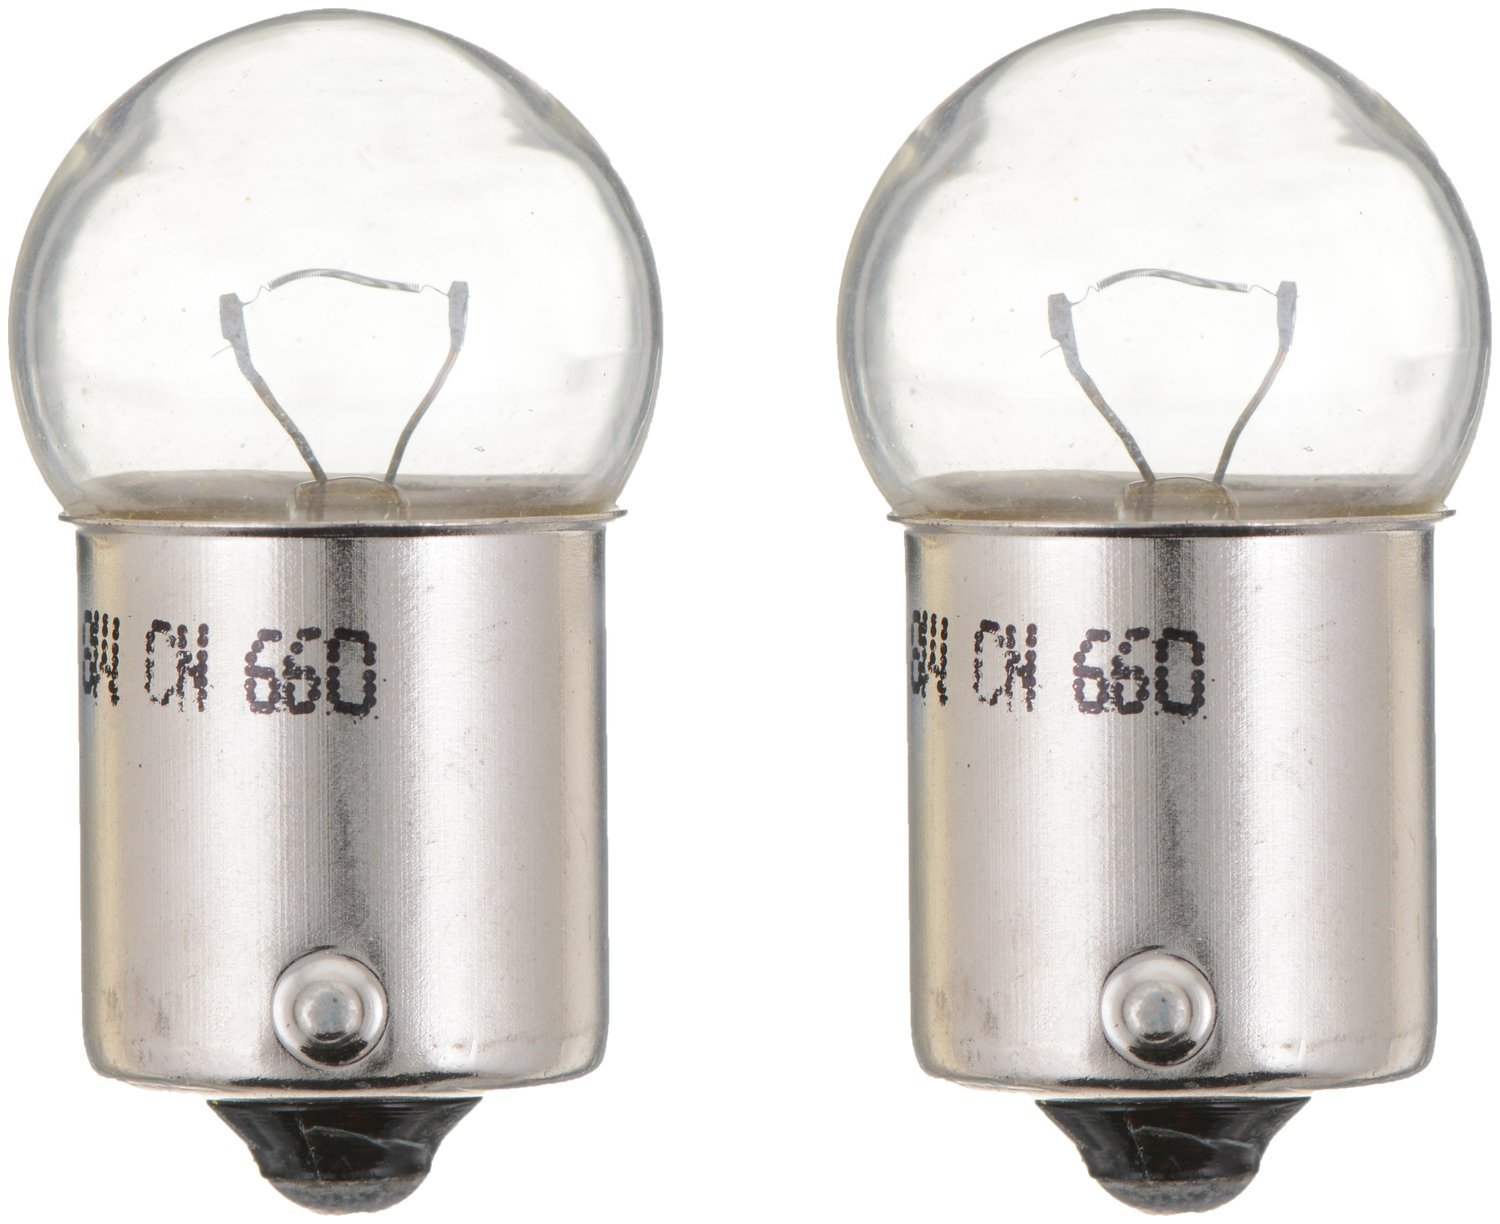 Amazon.com: Bosch 89 Long Life Upgrade Minature Bulb, Pack of 2 - 89LL: Automotive